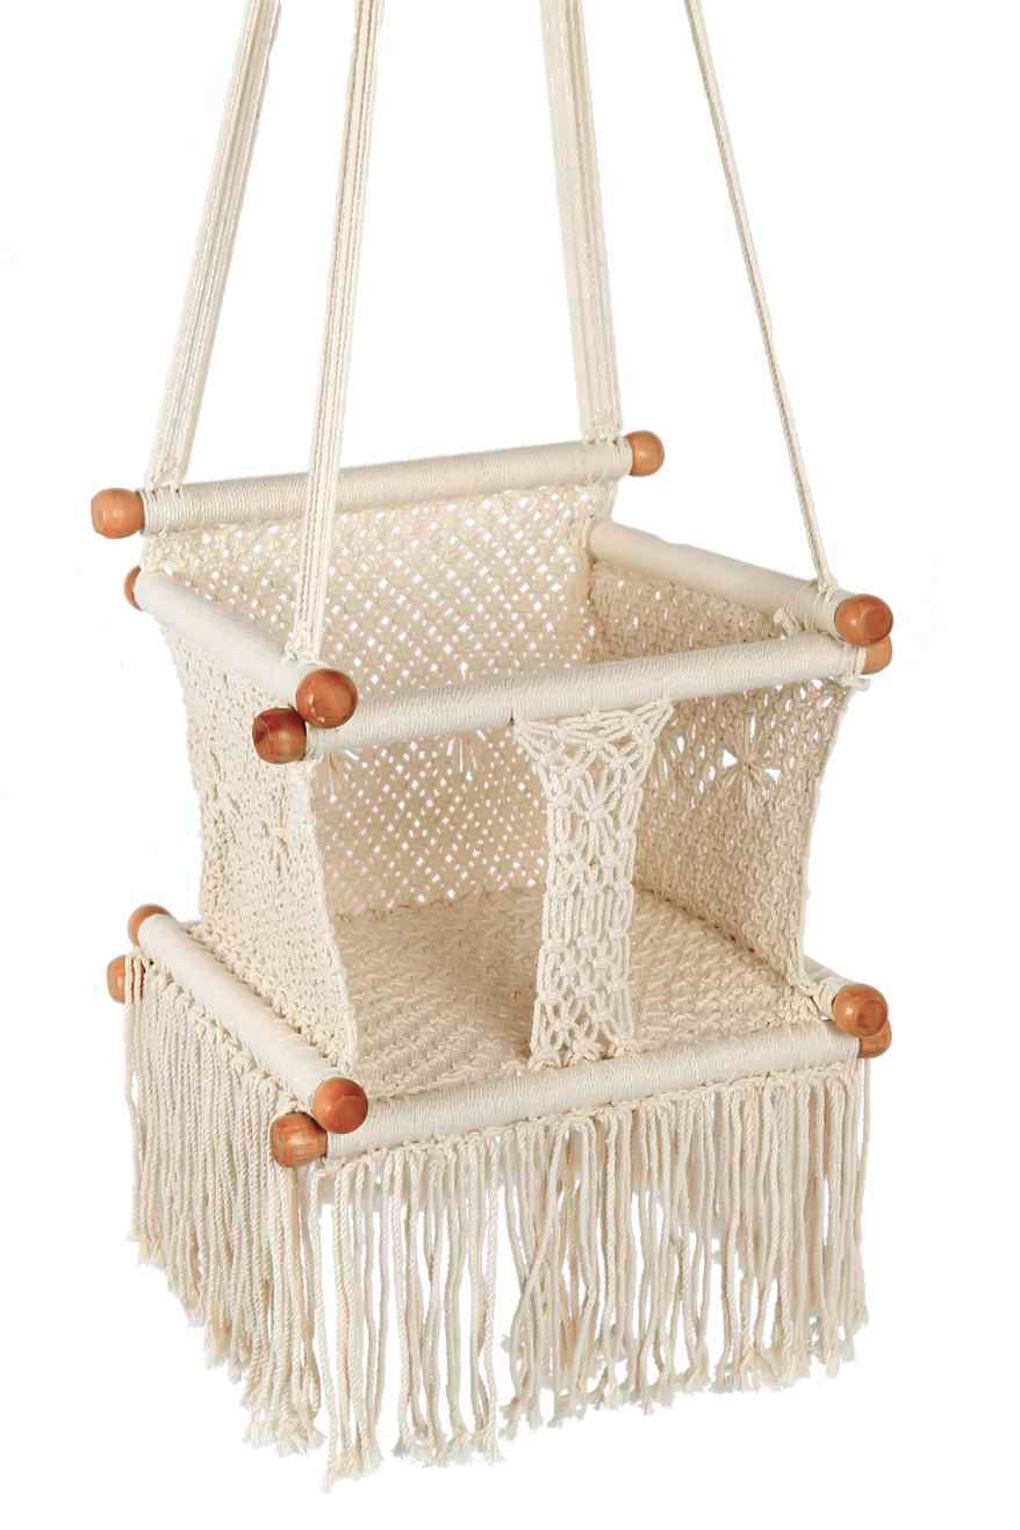 Crochet baby swing swing chairs crochet baby and babies crochet baby trinket swing chair bankloansurffo Image collections